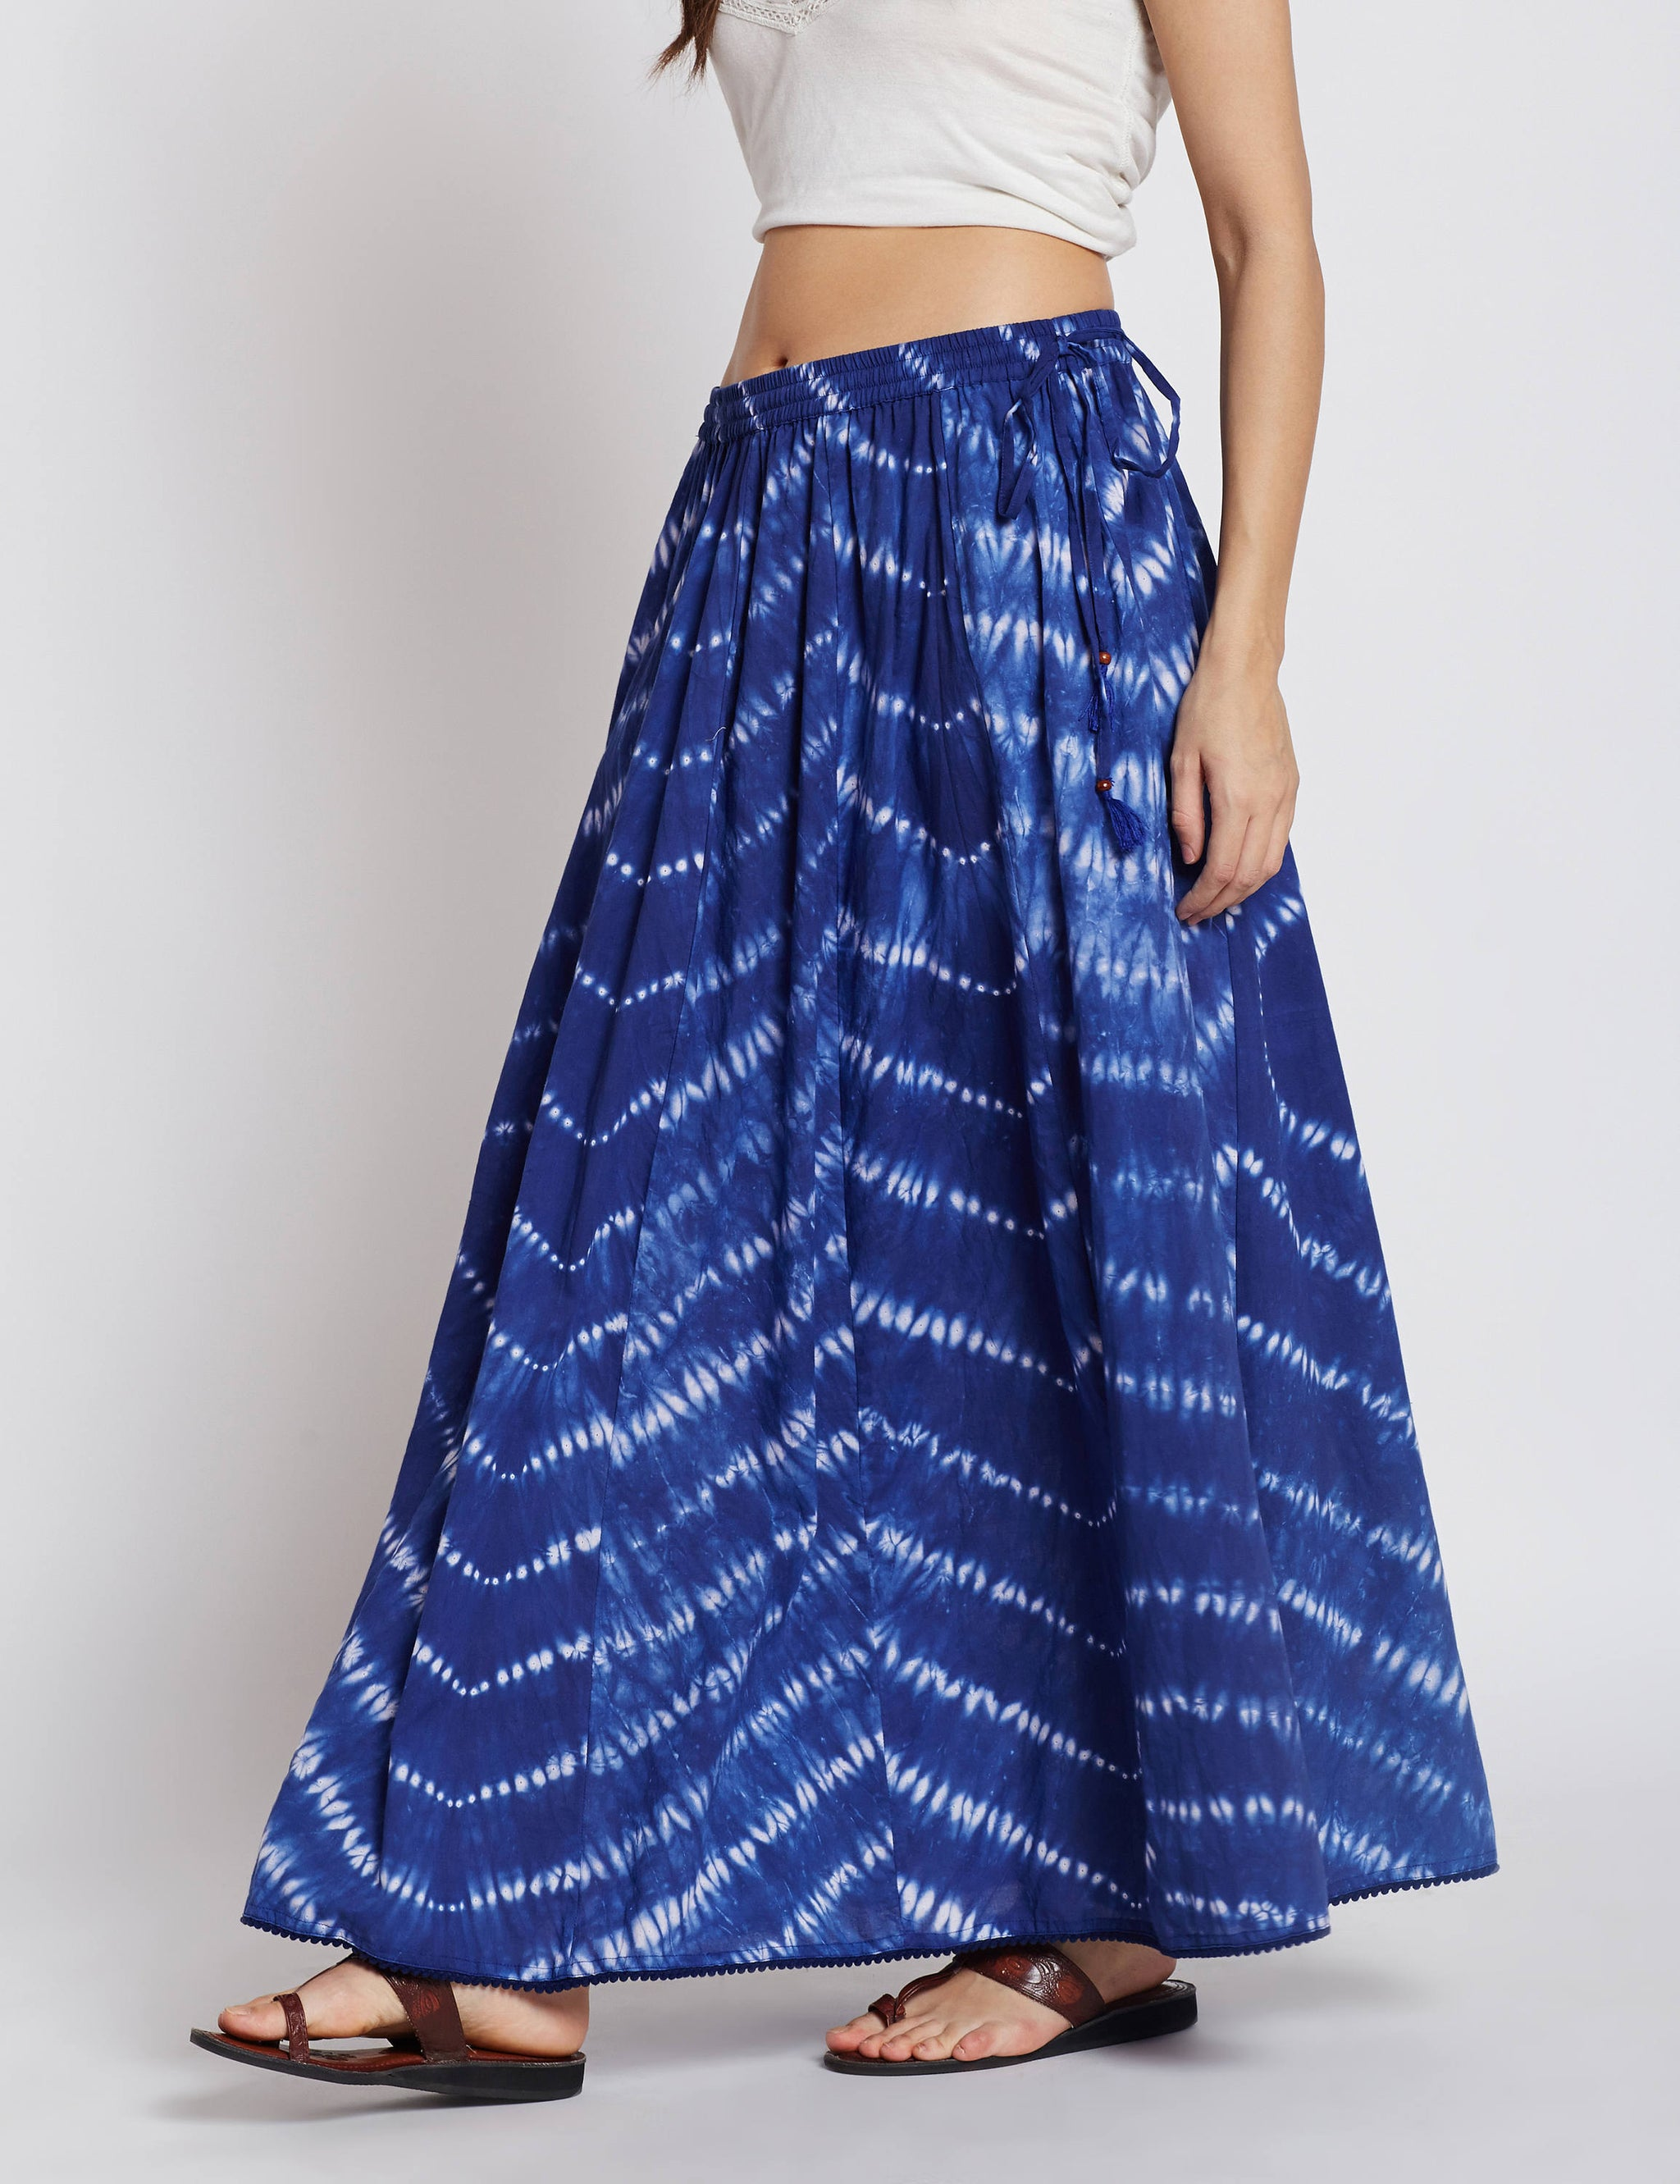 Shibori panelled long skirt in blue colour